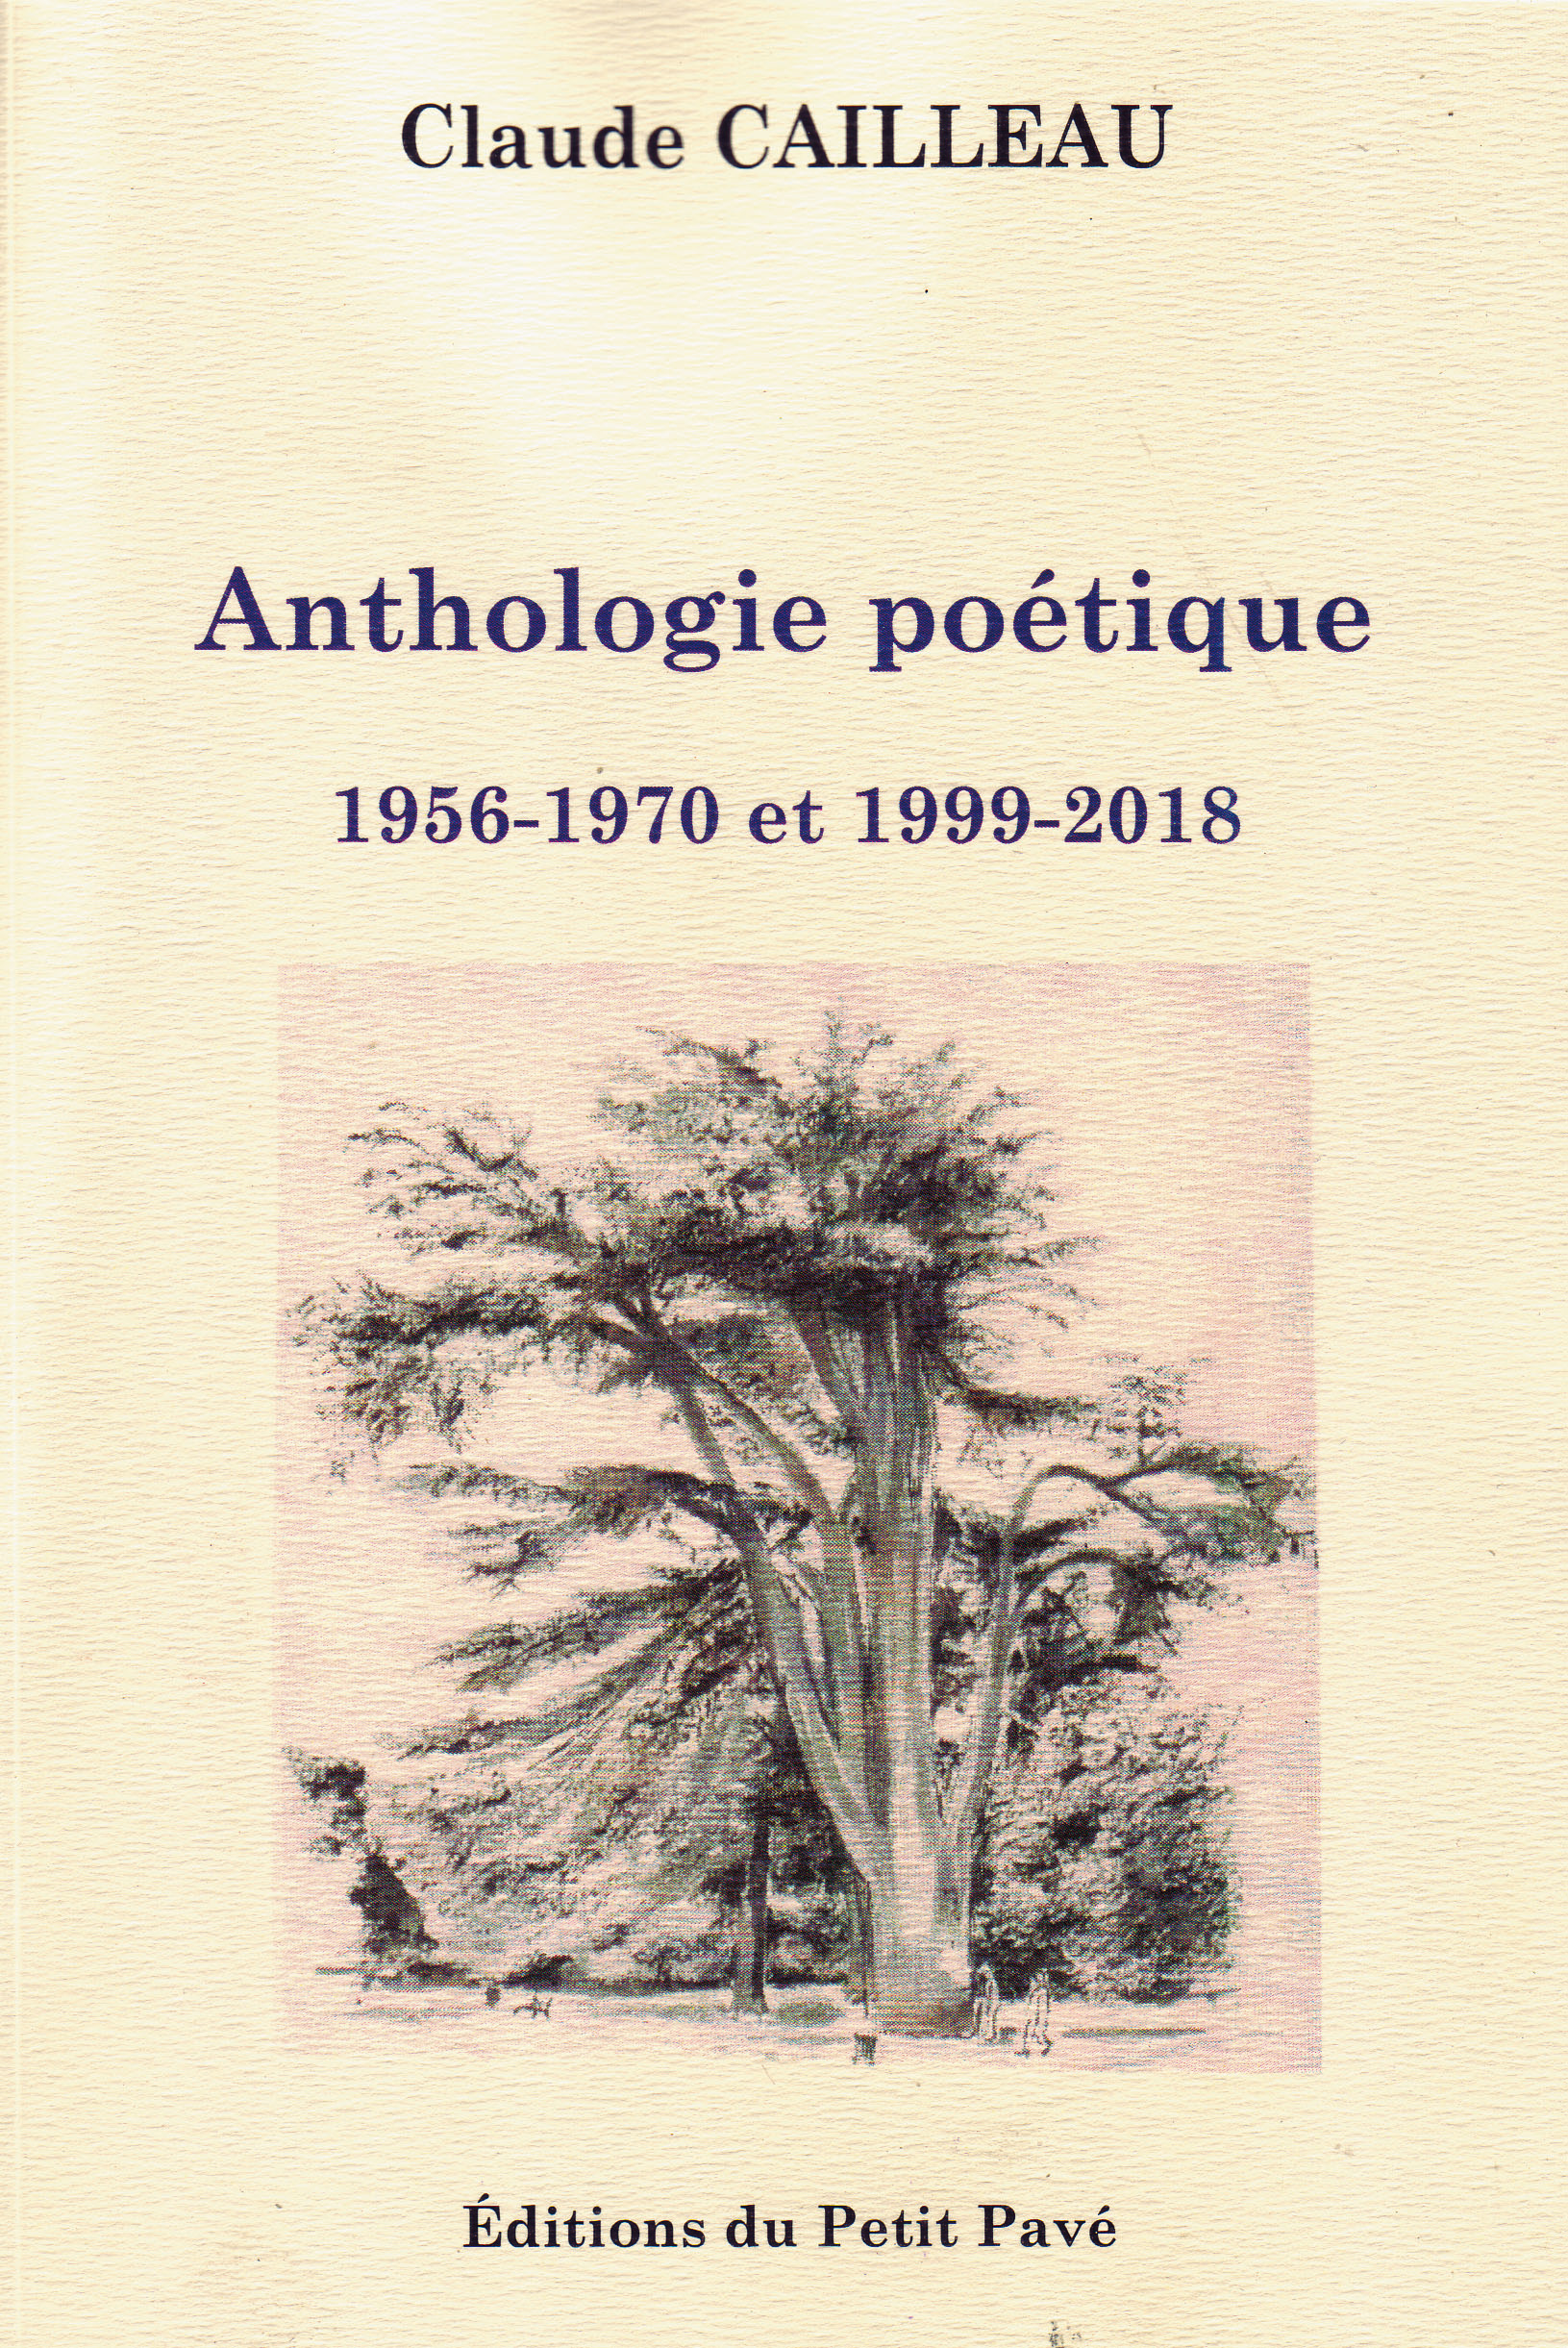 Anthologie poétique - Photo cailleau-anthologie.jpg